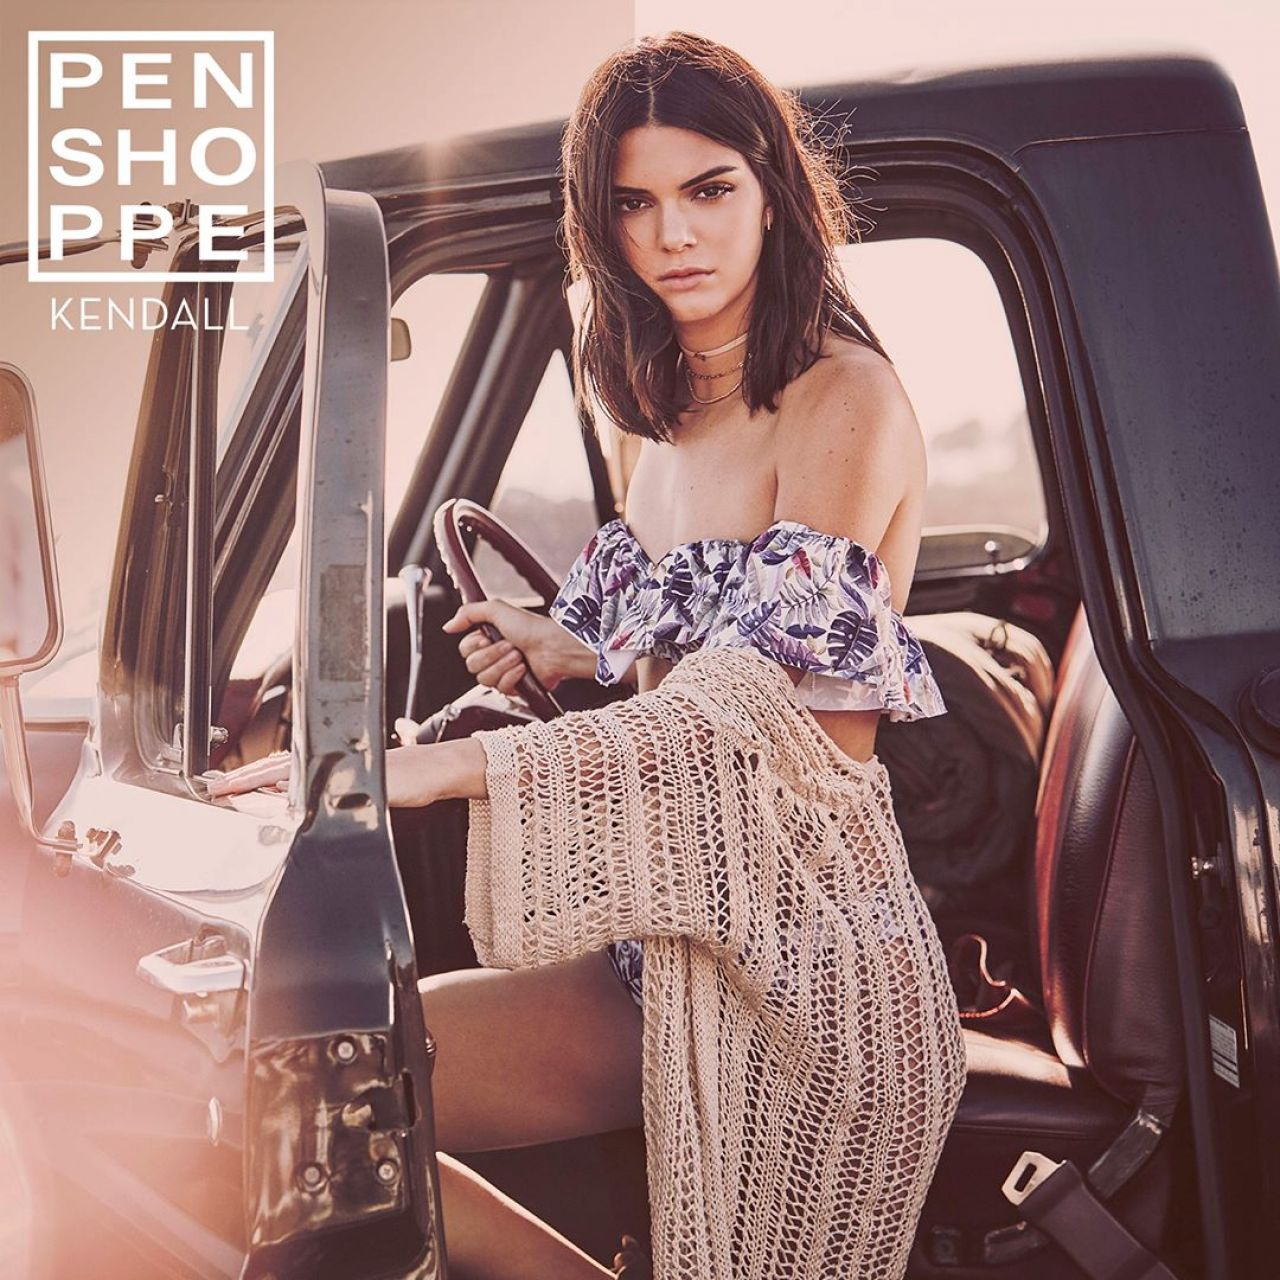 Fall In Nyc Wallpaper Kendall Jenner Penshoppe Spring Summer 2017 Collection